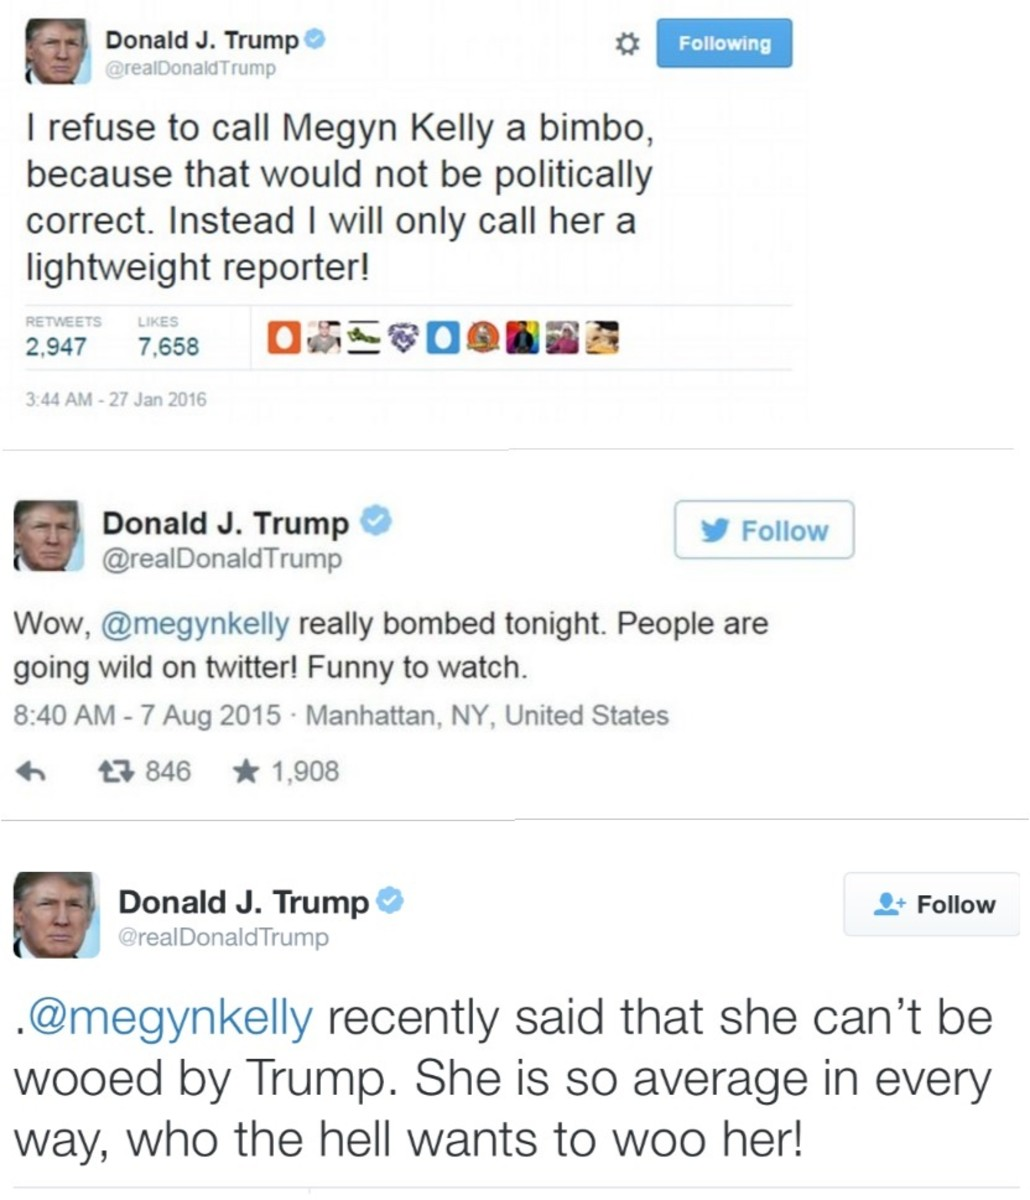 23-hilariously-stupid-sexist-childish-or-egotistical-things-donald-trump-has-said